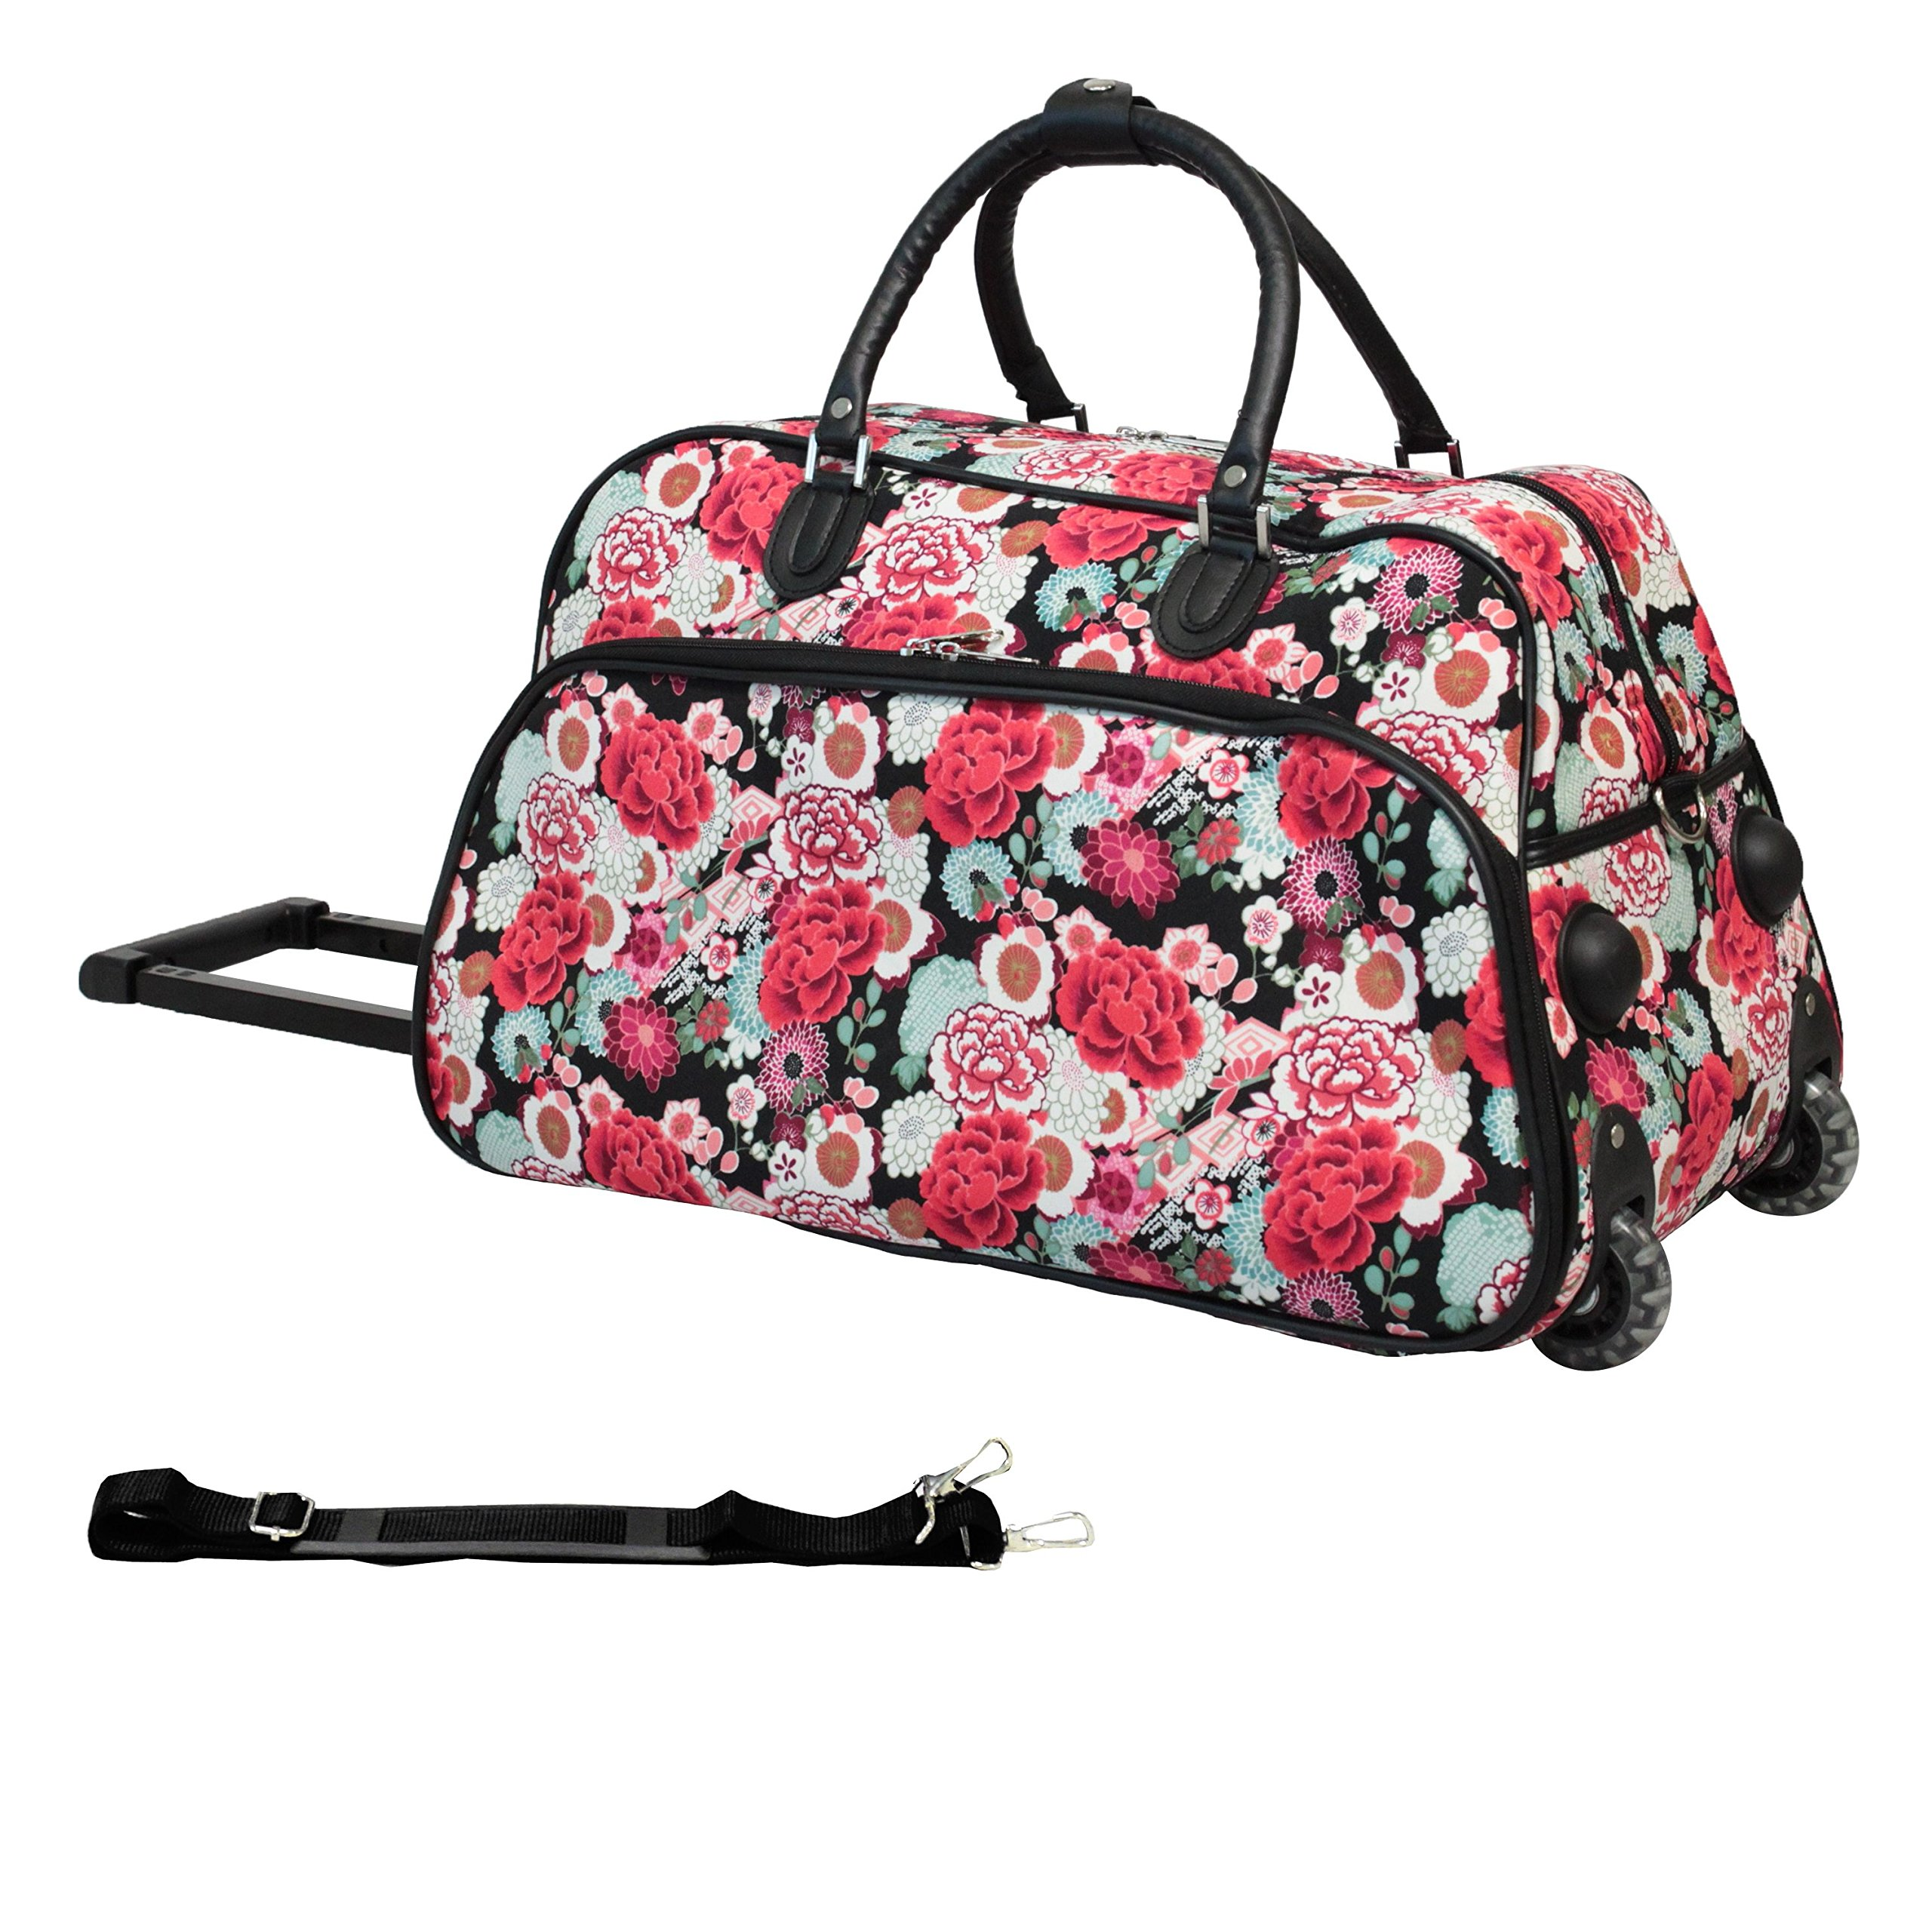 DH Girls Red Pink Floral Pattern Wheeled Duffle Bag Upright Rolling Duffle, Beautiful All Over Bohemian Flowers Print Carry on Duffel, Travel Wheeled Duffel with Wheels, Wheeling Luggage, Fashionable